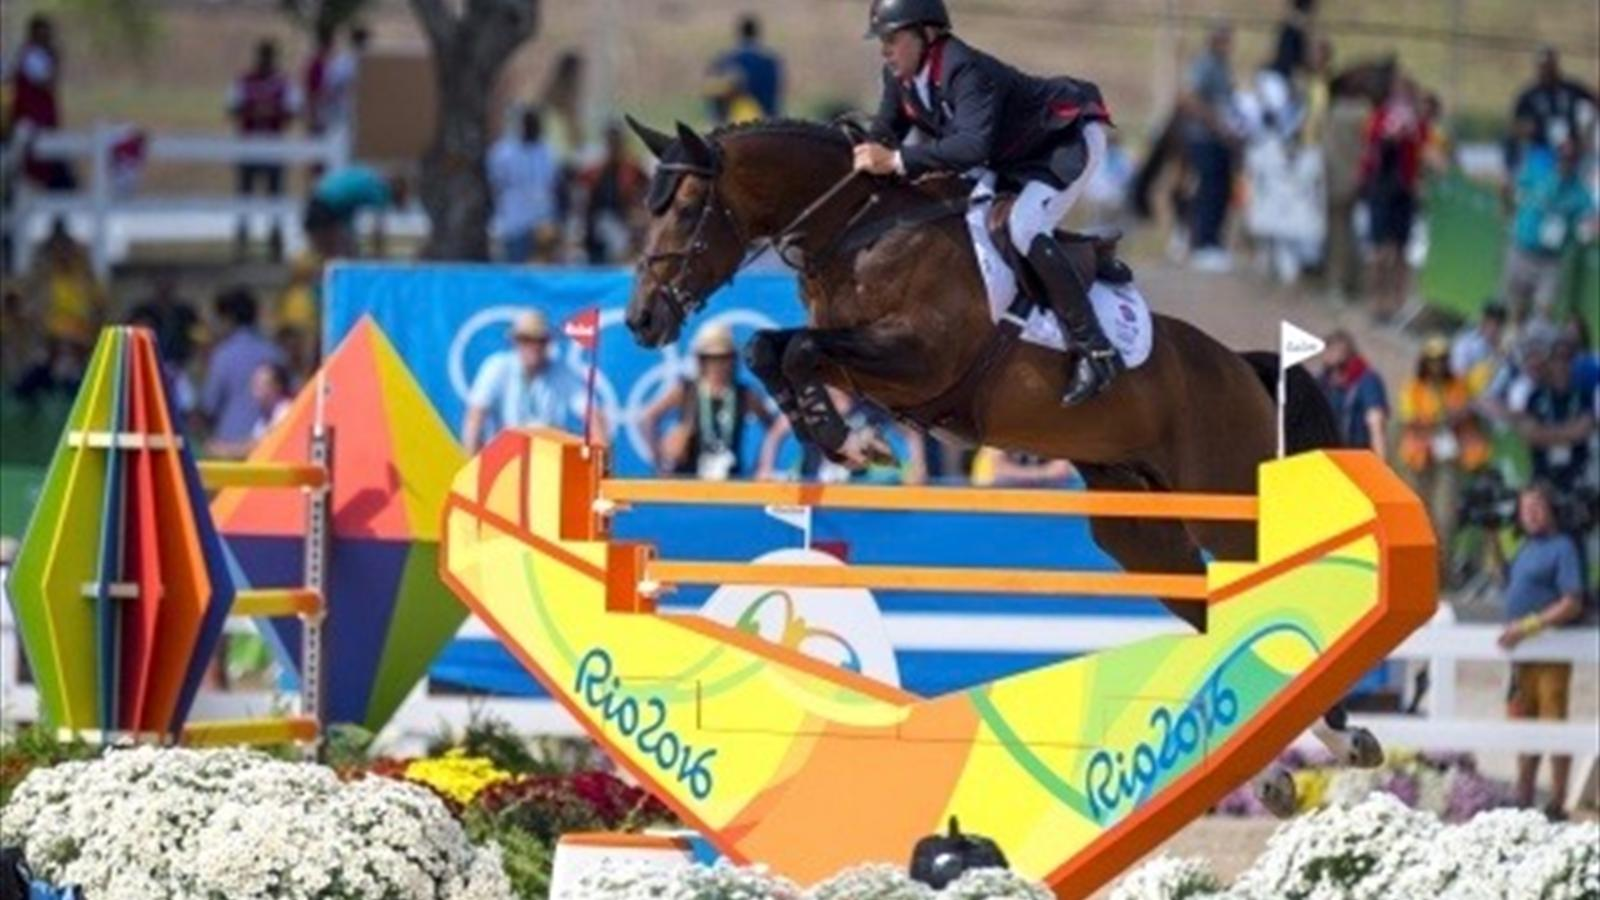 Great Britain's Nick Skelton wins individual Olympic show jumping gold in Rio - Equestrian ...